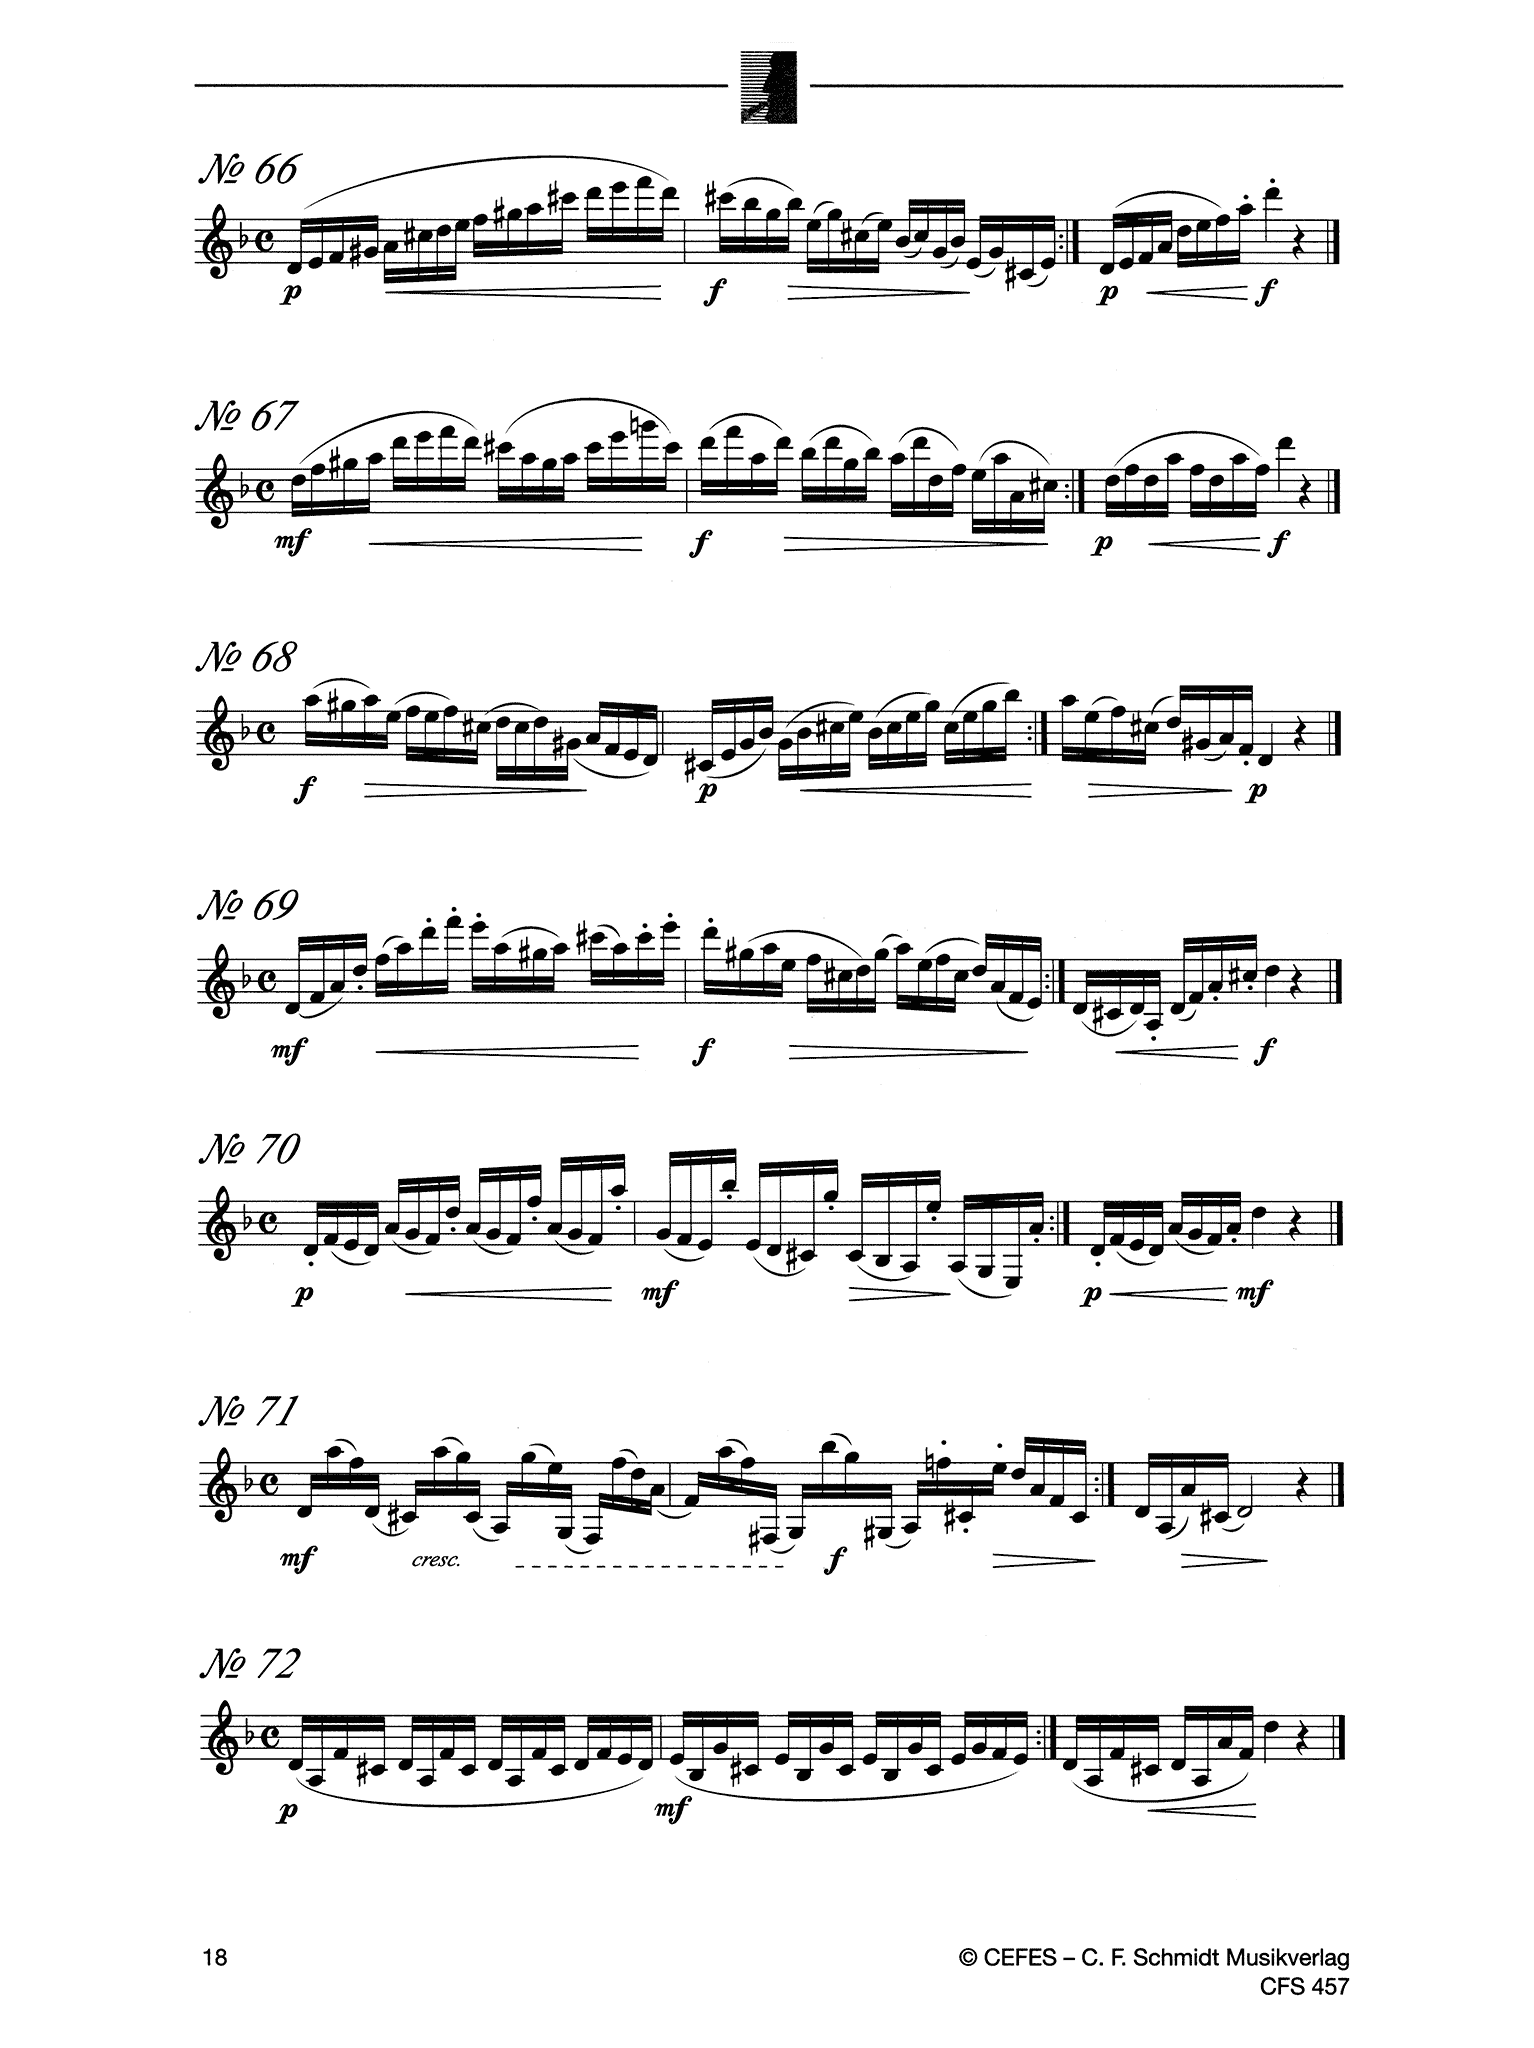 416 Progressive Studies for Clarinet, Book 1: 167 Daily Exercises Page 18